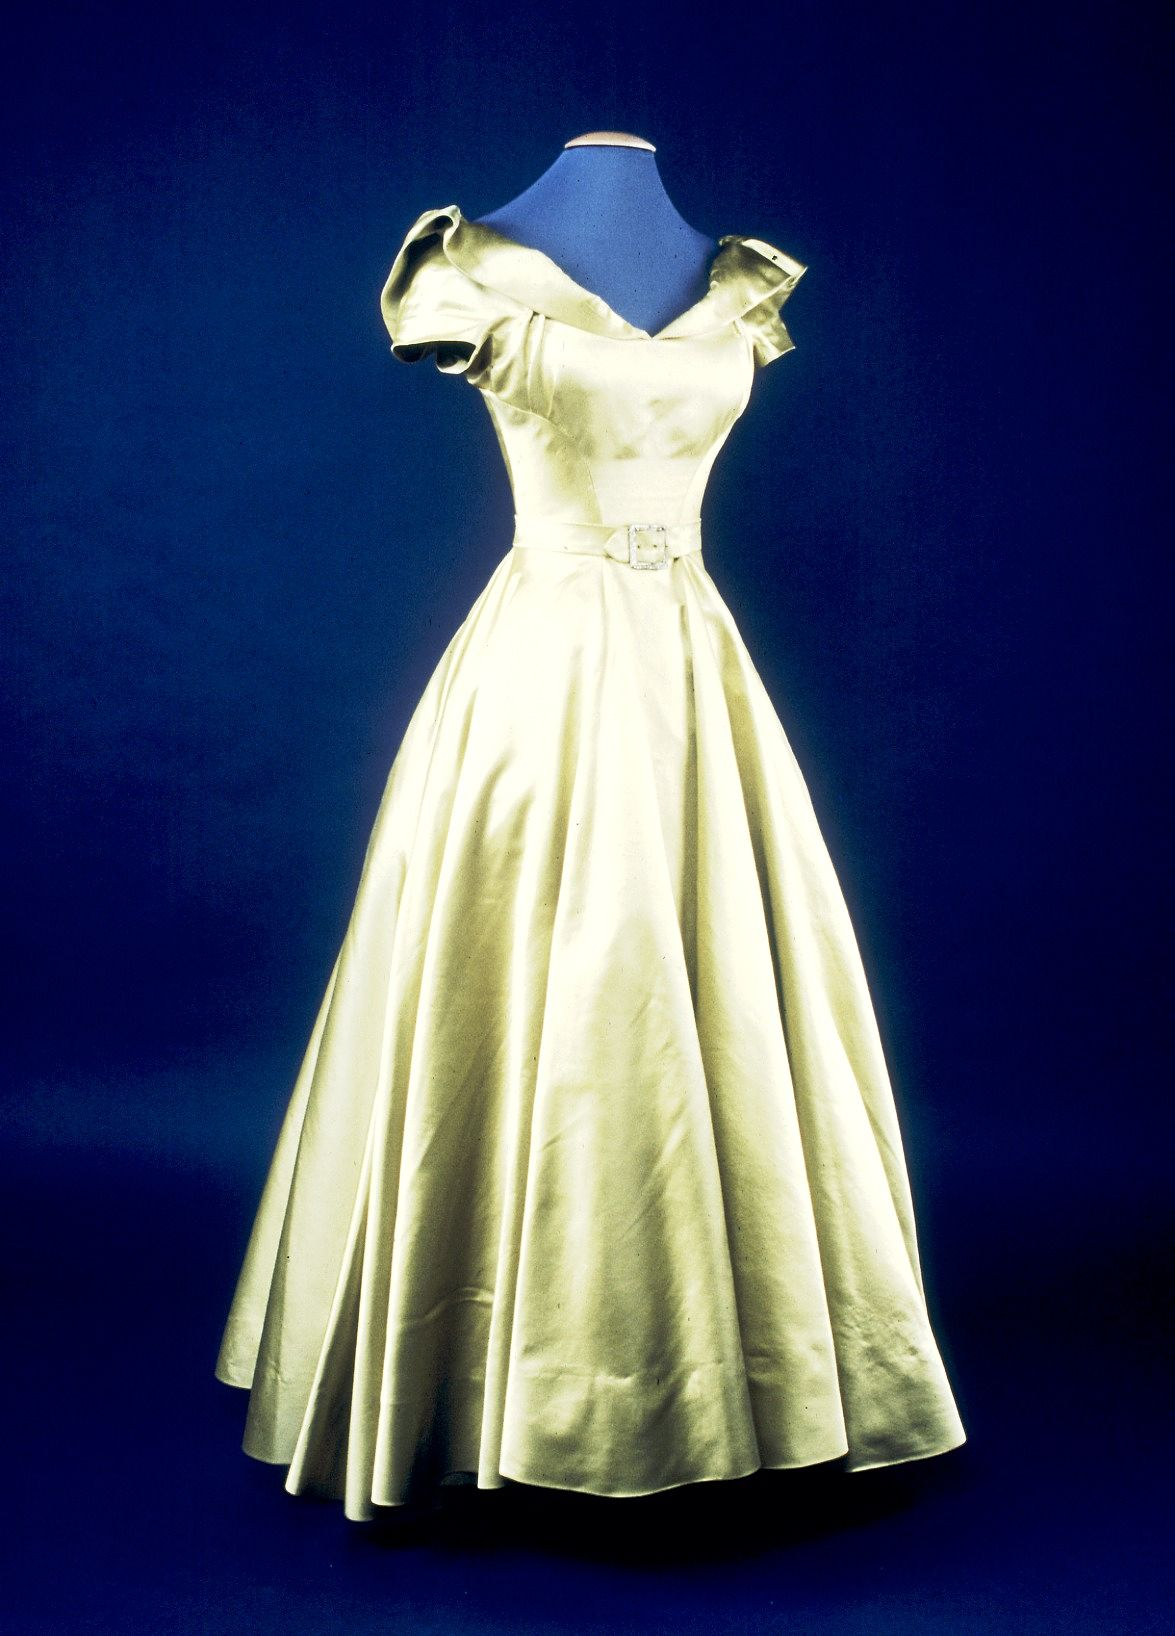 Two-piece dress, Hattie Carnegie, 1948-49.